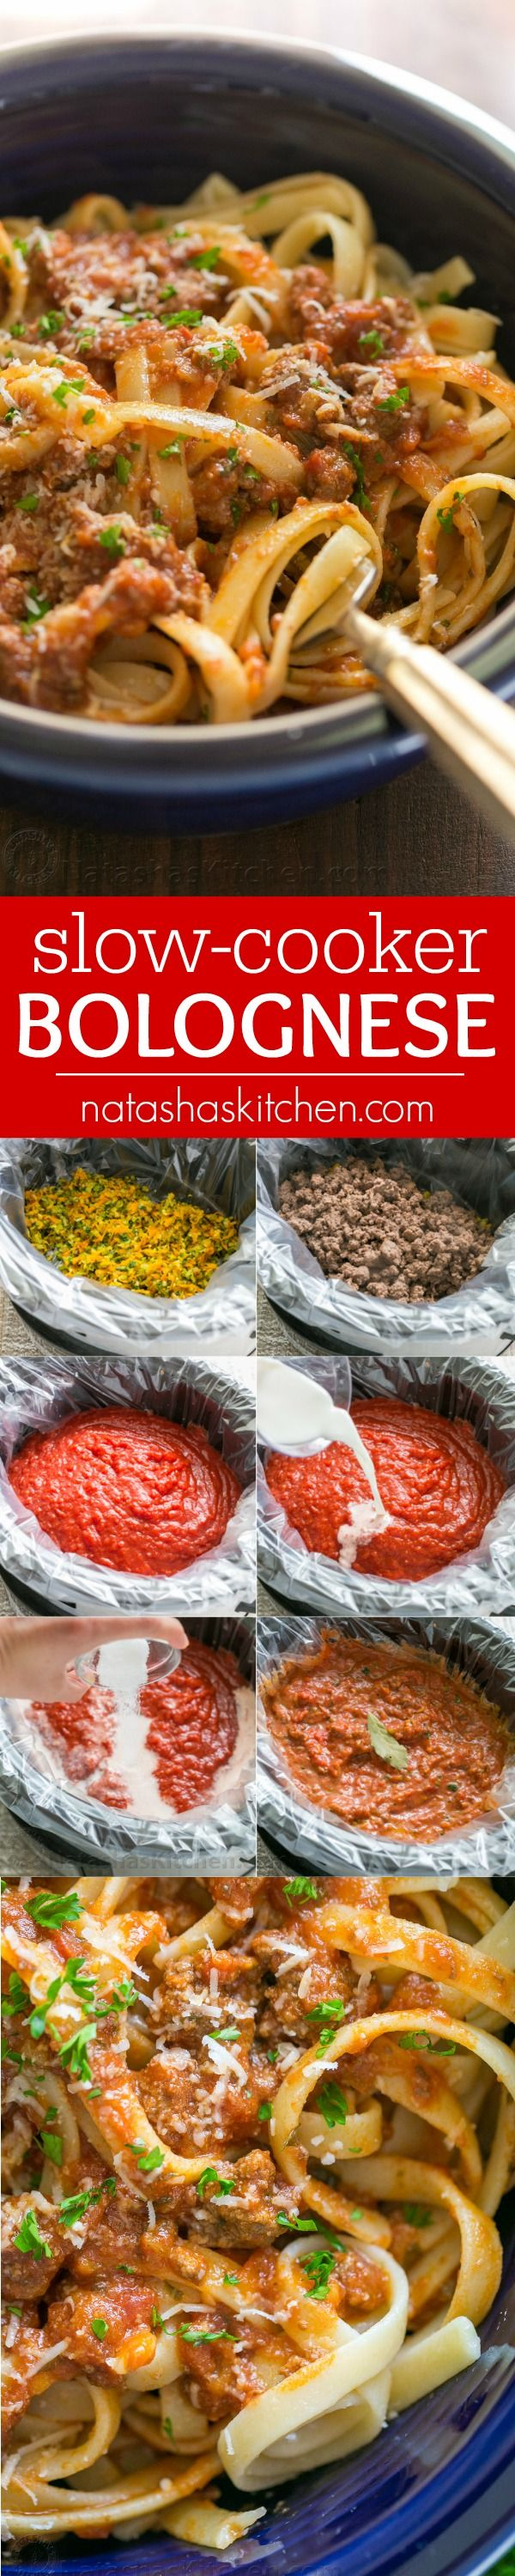 Good bolognese sauce (Italian Ragu) is cooked slowly, puttering away as deep meaty flavors develop. This slow cooker bolognese recipe couldn't be easier!   natashaskitchen.com